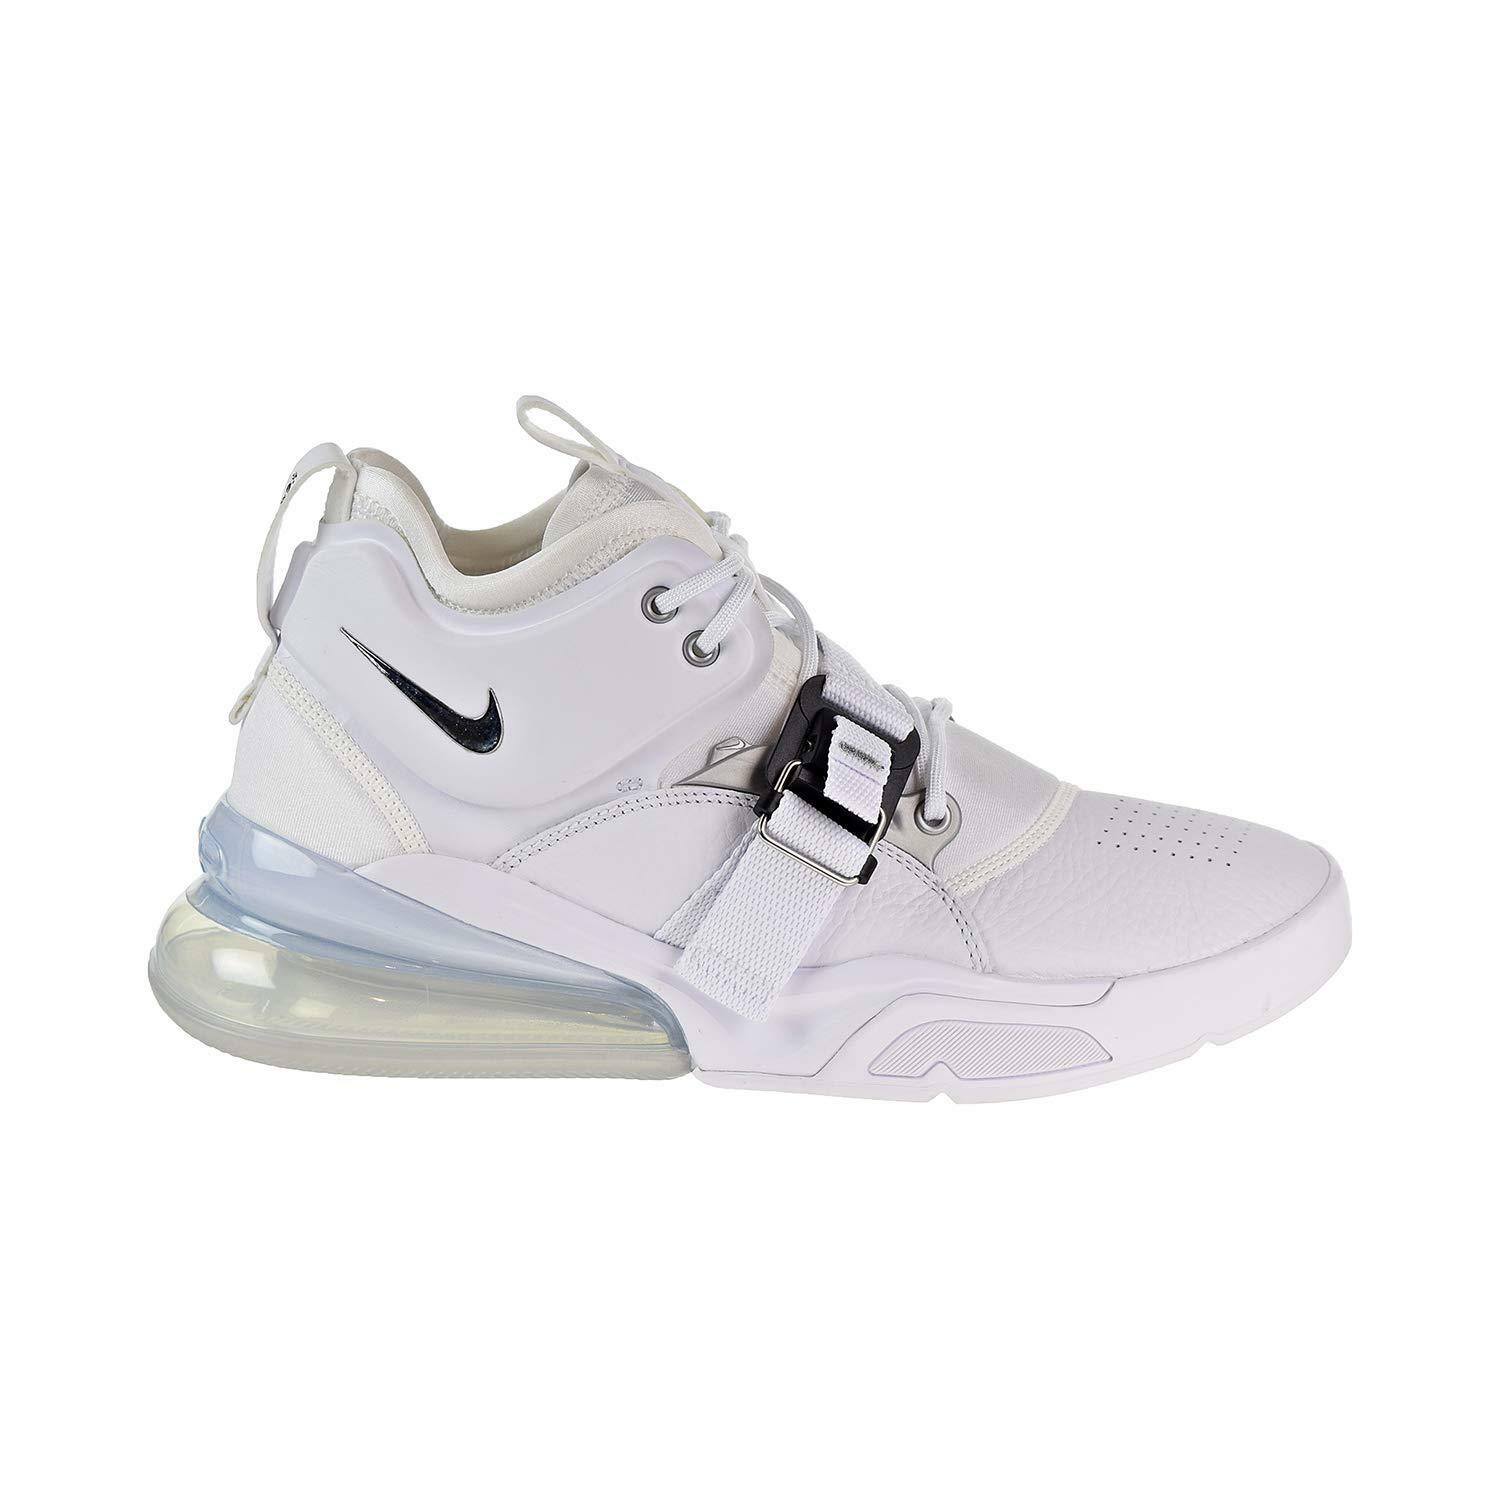 Nike Mens Air Force 270  Basketball scarpe  risparmia fino al 50%